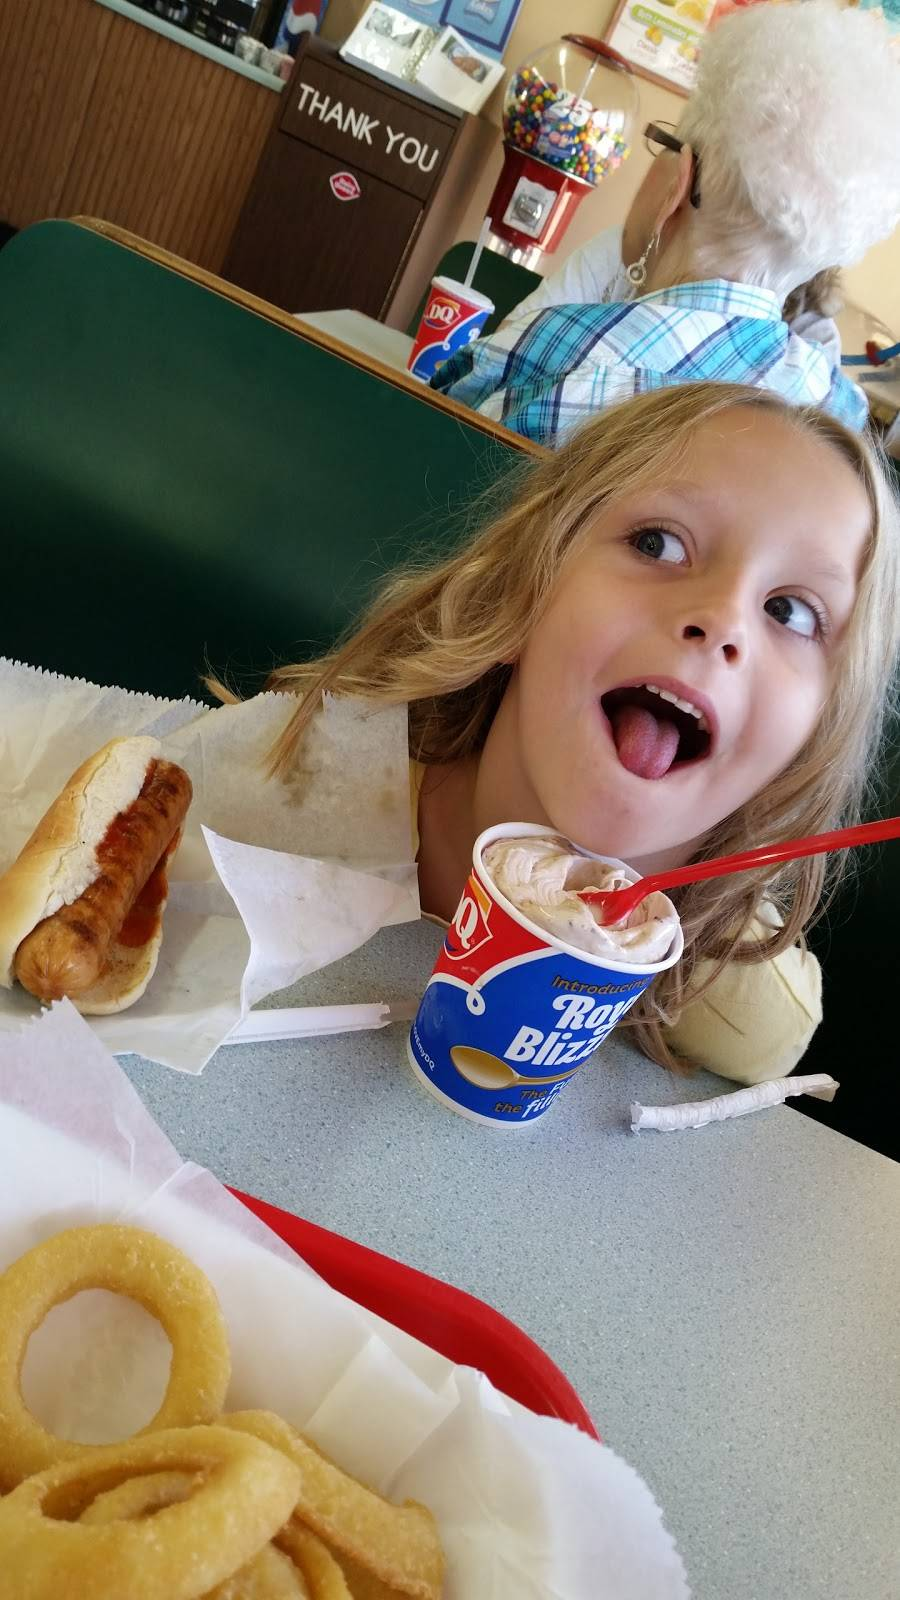 Dairy Queen | restaurant | 212 7th St SE, Oelwein, IA 50662, USA | 3192834515 OR +1 319-283-4515